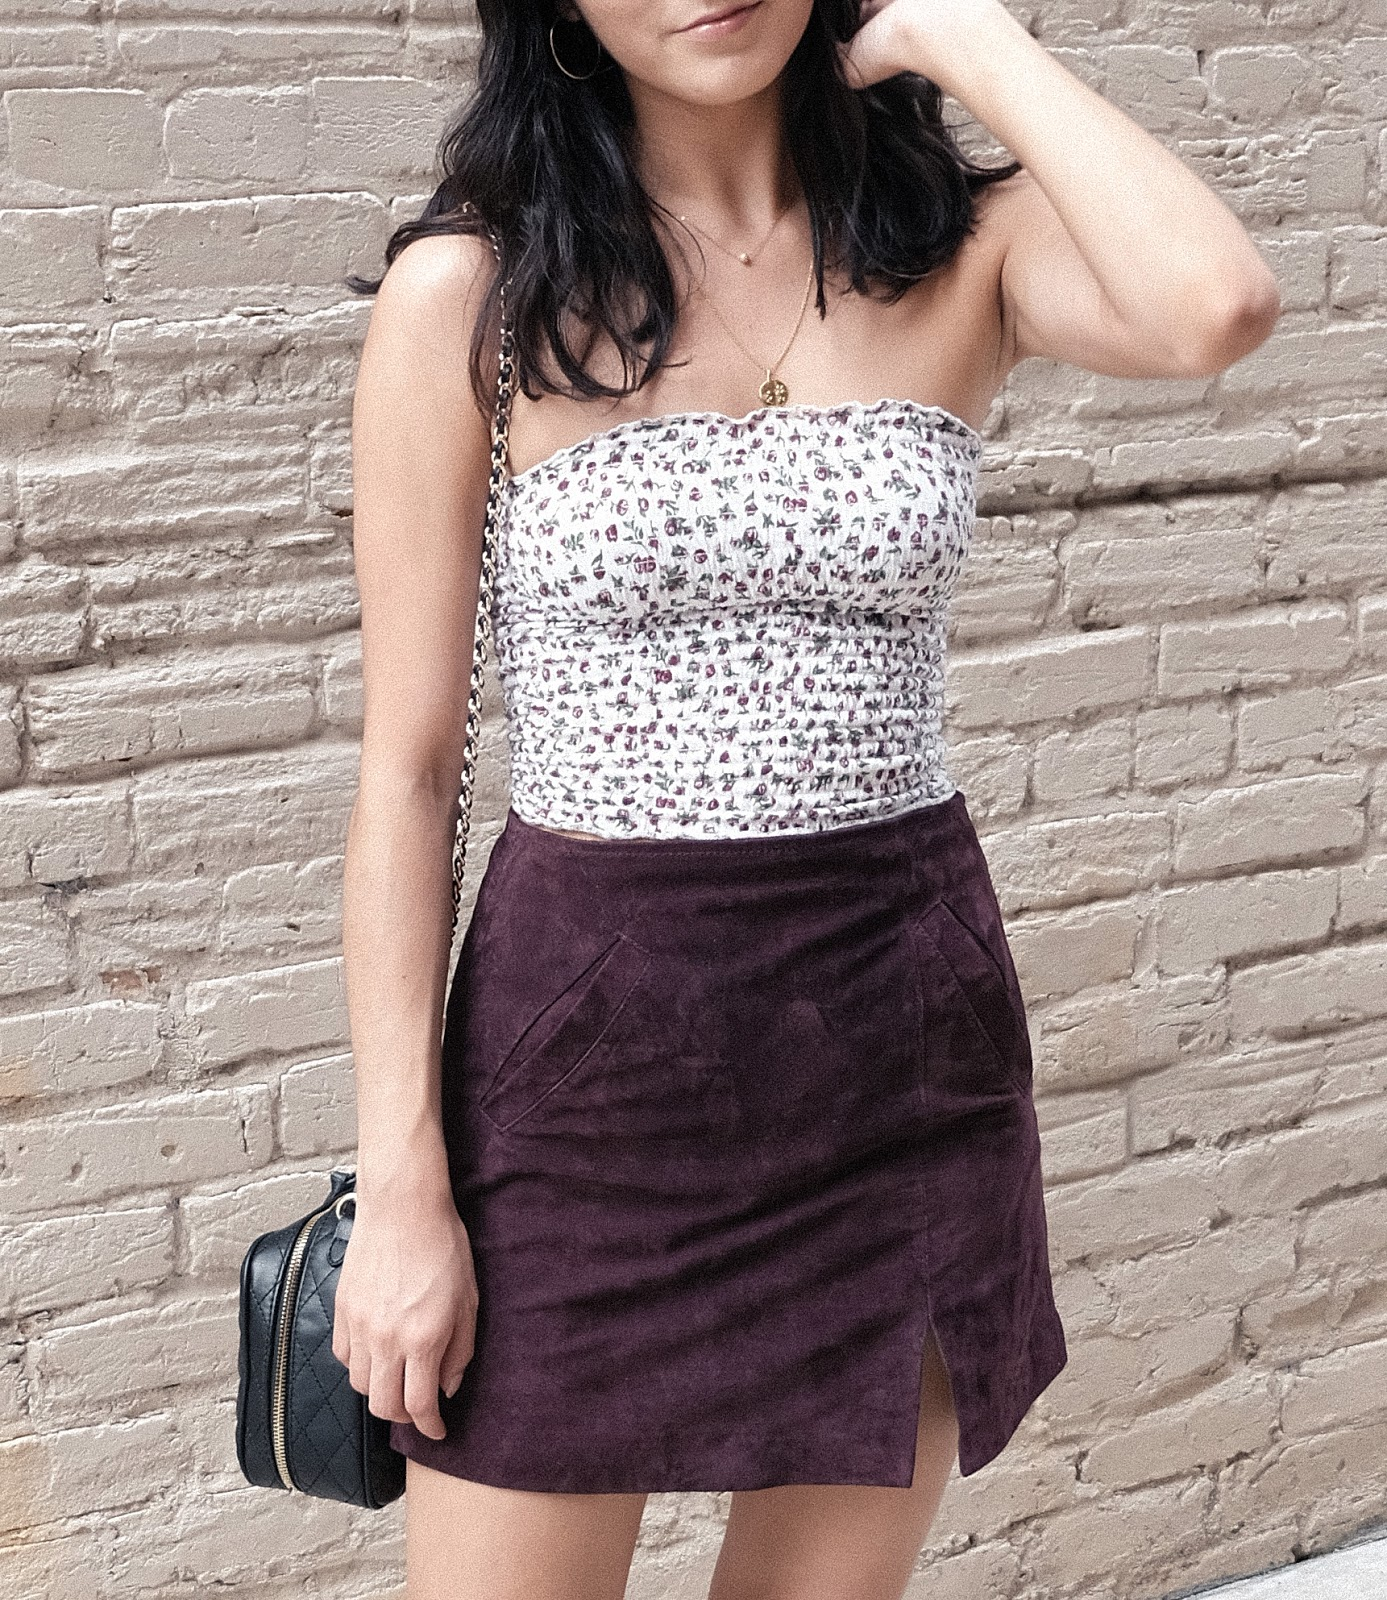 april soderstrom bijou necklace, blanknyc suede skirt, smocked tube top, adidas stan smith, easy casual outfits